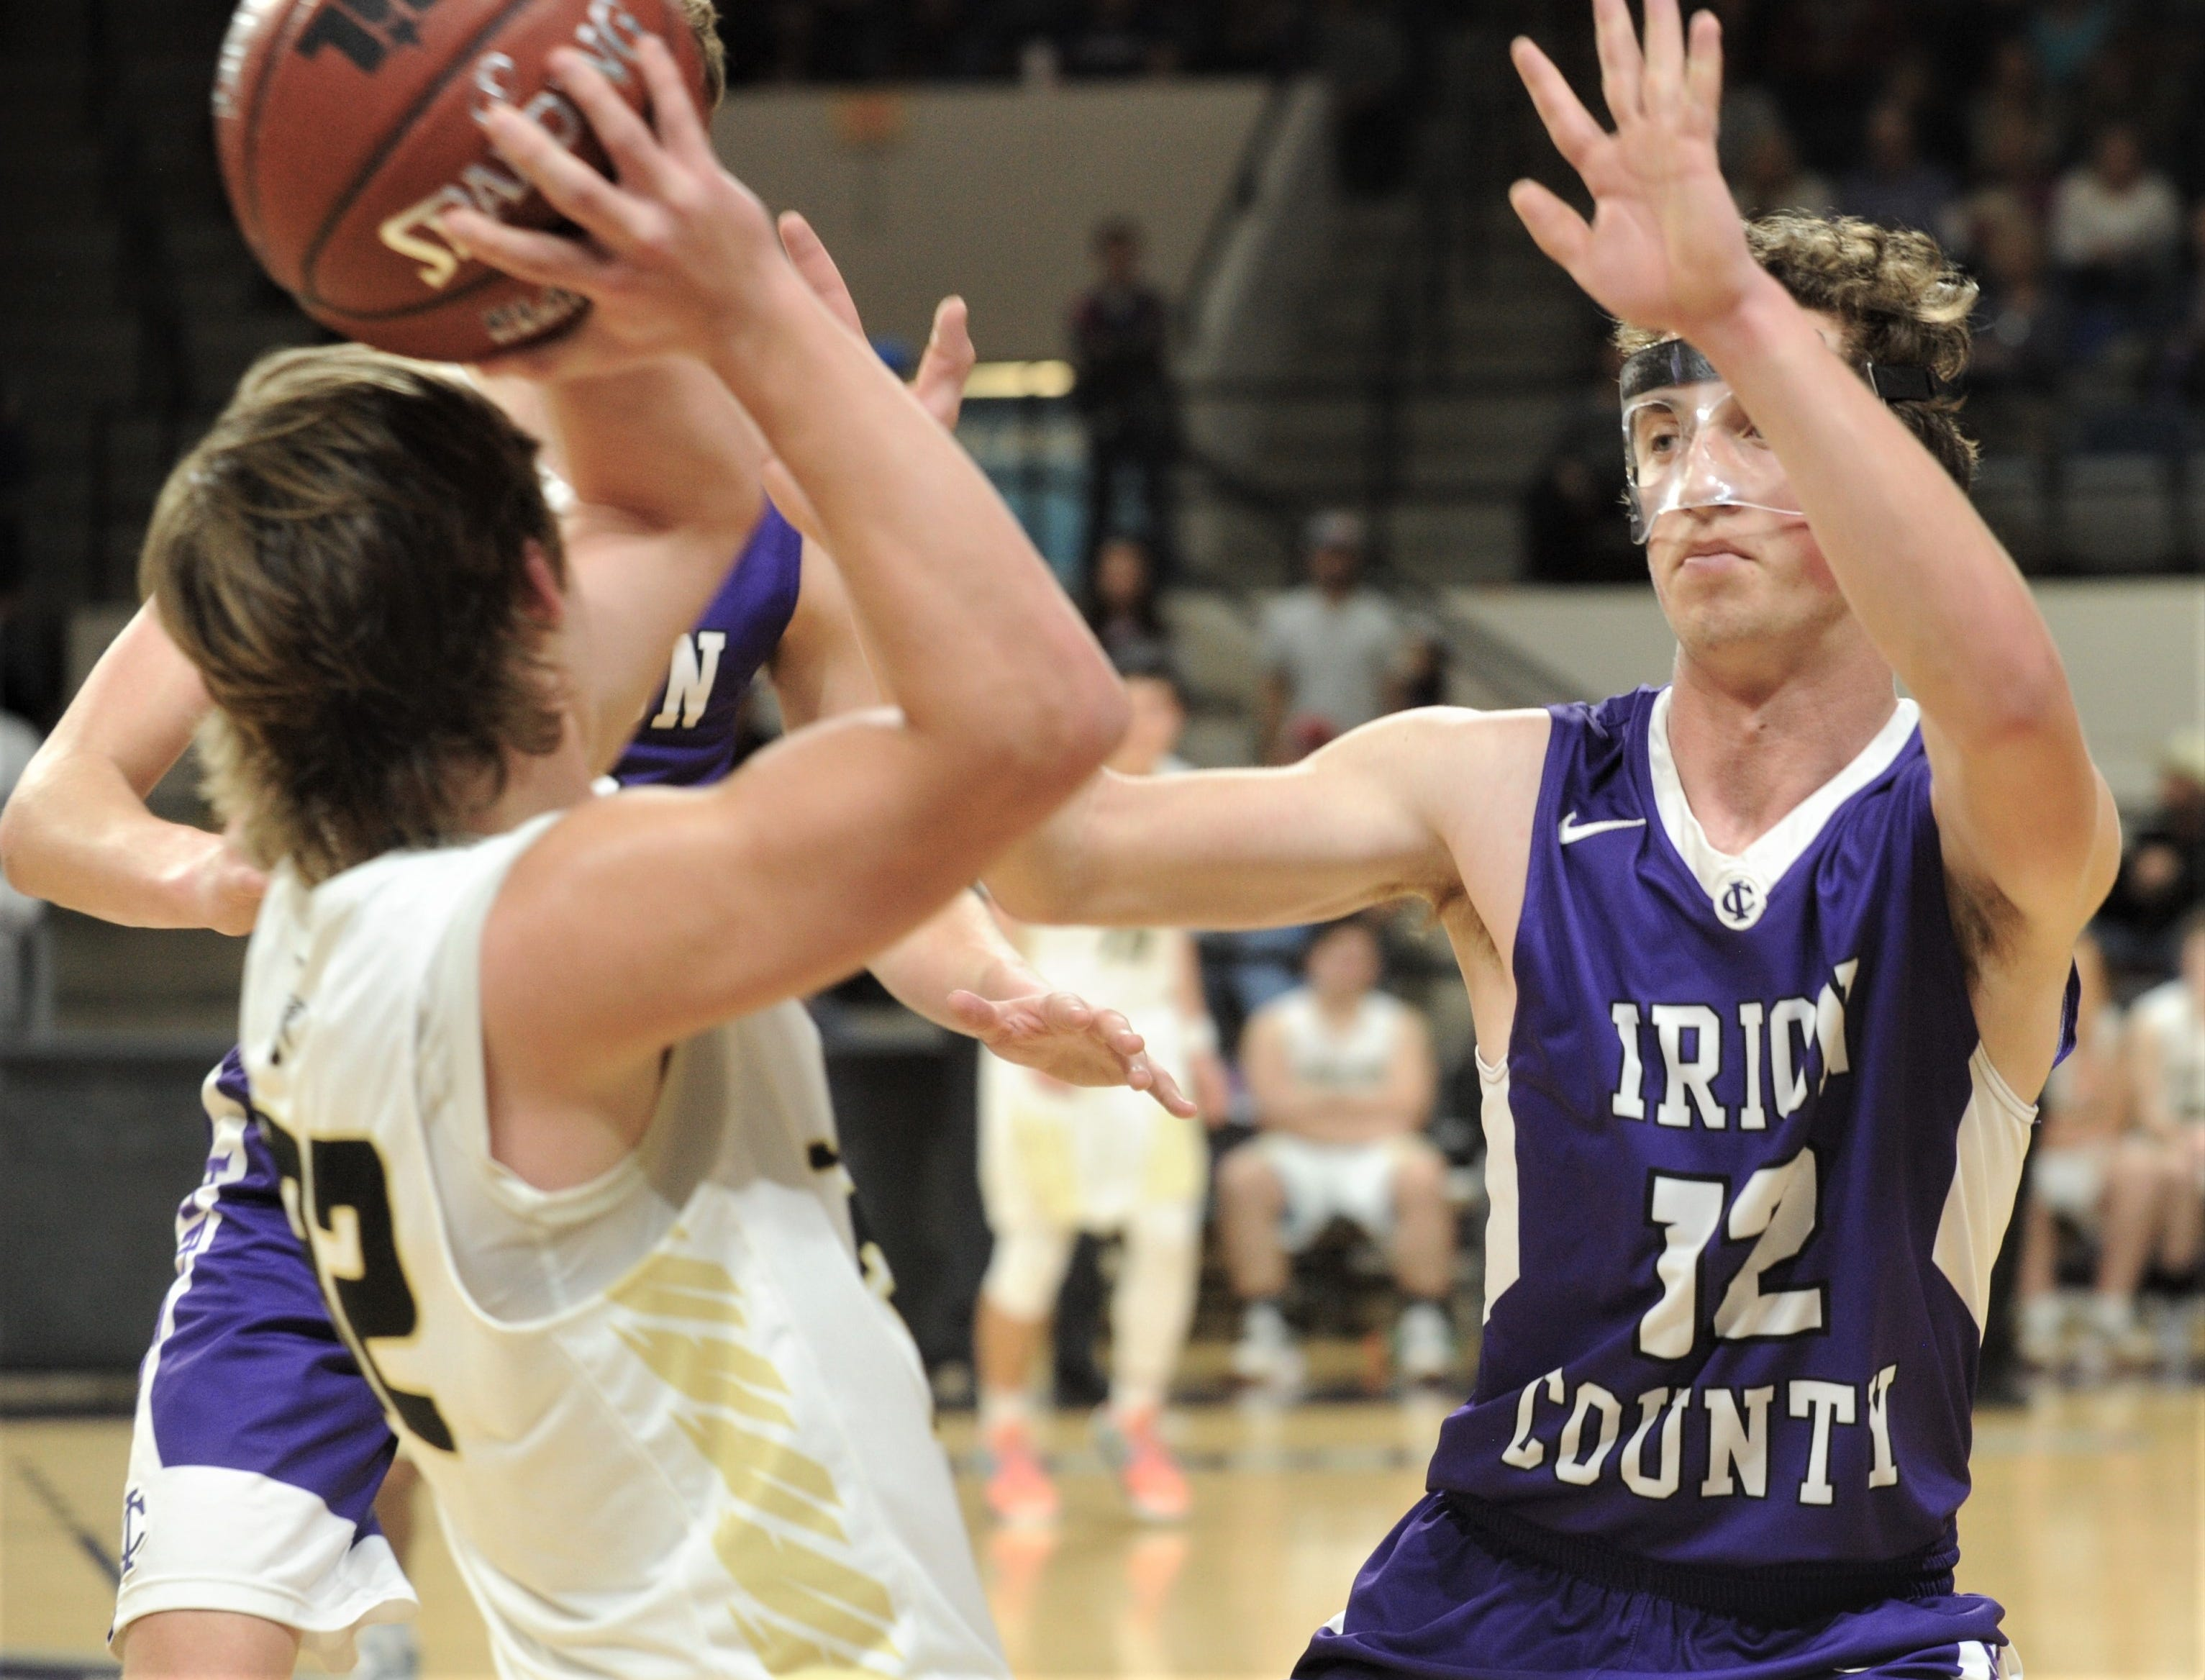 Irion County's Sawyer Paxton, right, and a teammate put pressure on Jayton's Tye Scogin. The Jaybirds beat Irion County 47-32 in the Region II-1A championship game Saturday, March 2, 2019, at Abilene Christian's Moody Coliseum.